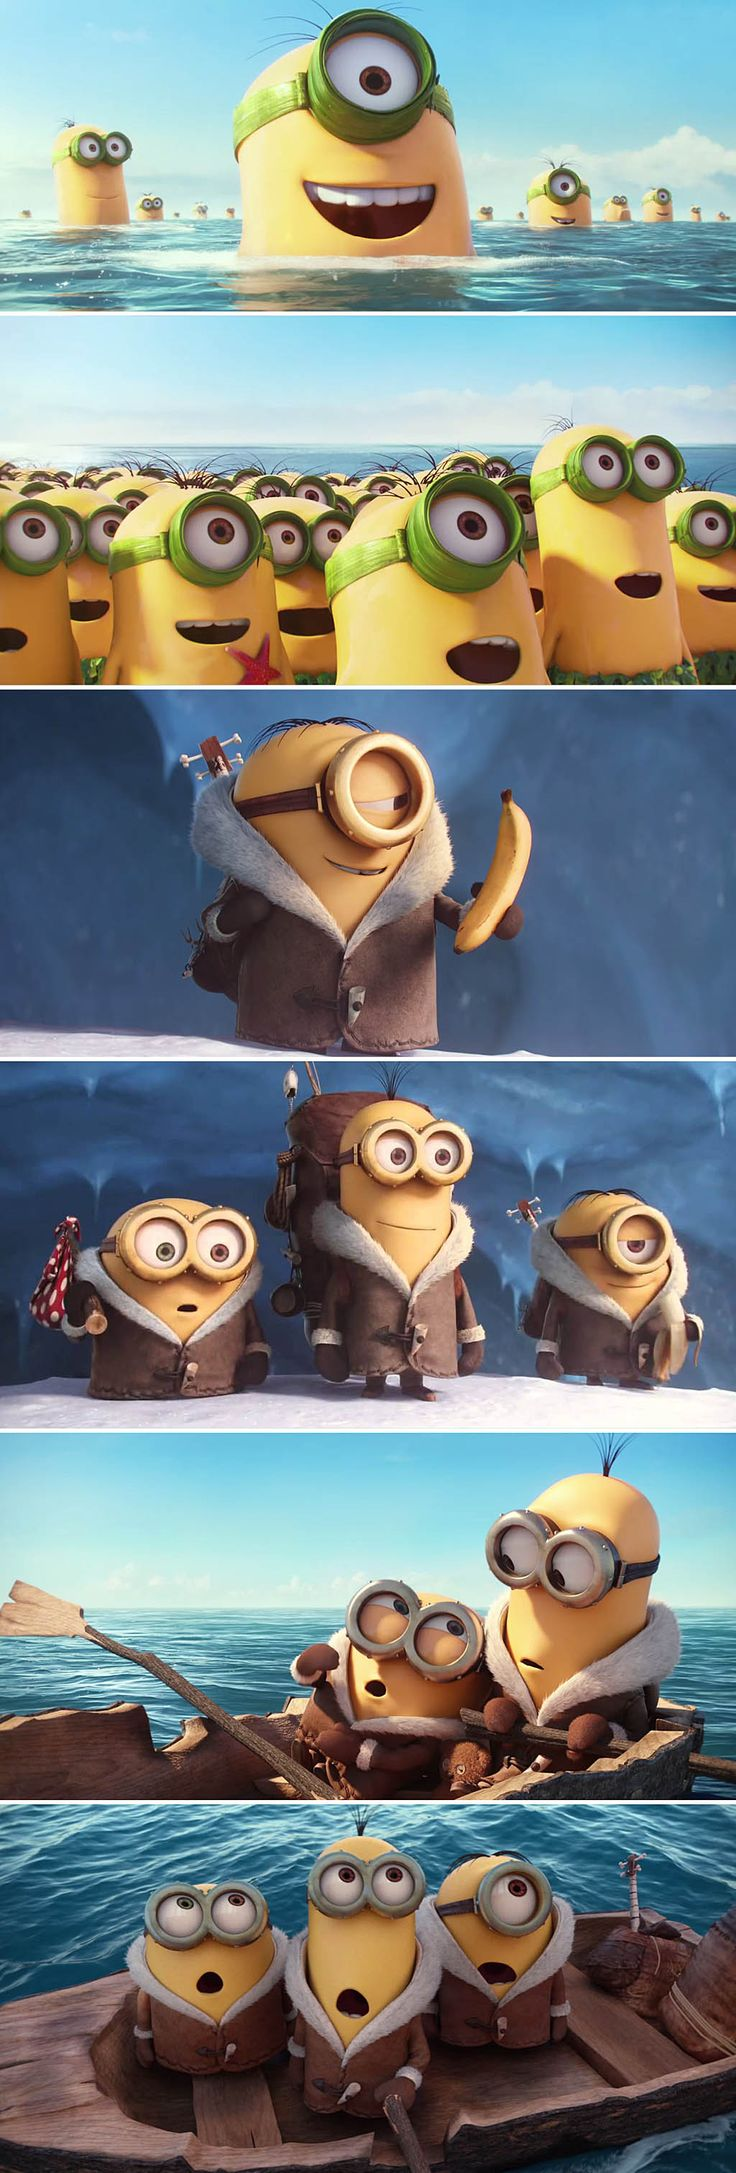 The #Minions are getting their own movie and the first trailer is out! Hahahaha! Looks awesome! See Stuart, Kevin, and Bob embarking on an epic journey 42 years before they met Gru. Watch it here: http://www.creation.com.es/minions-official-trailer-1/